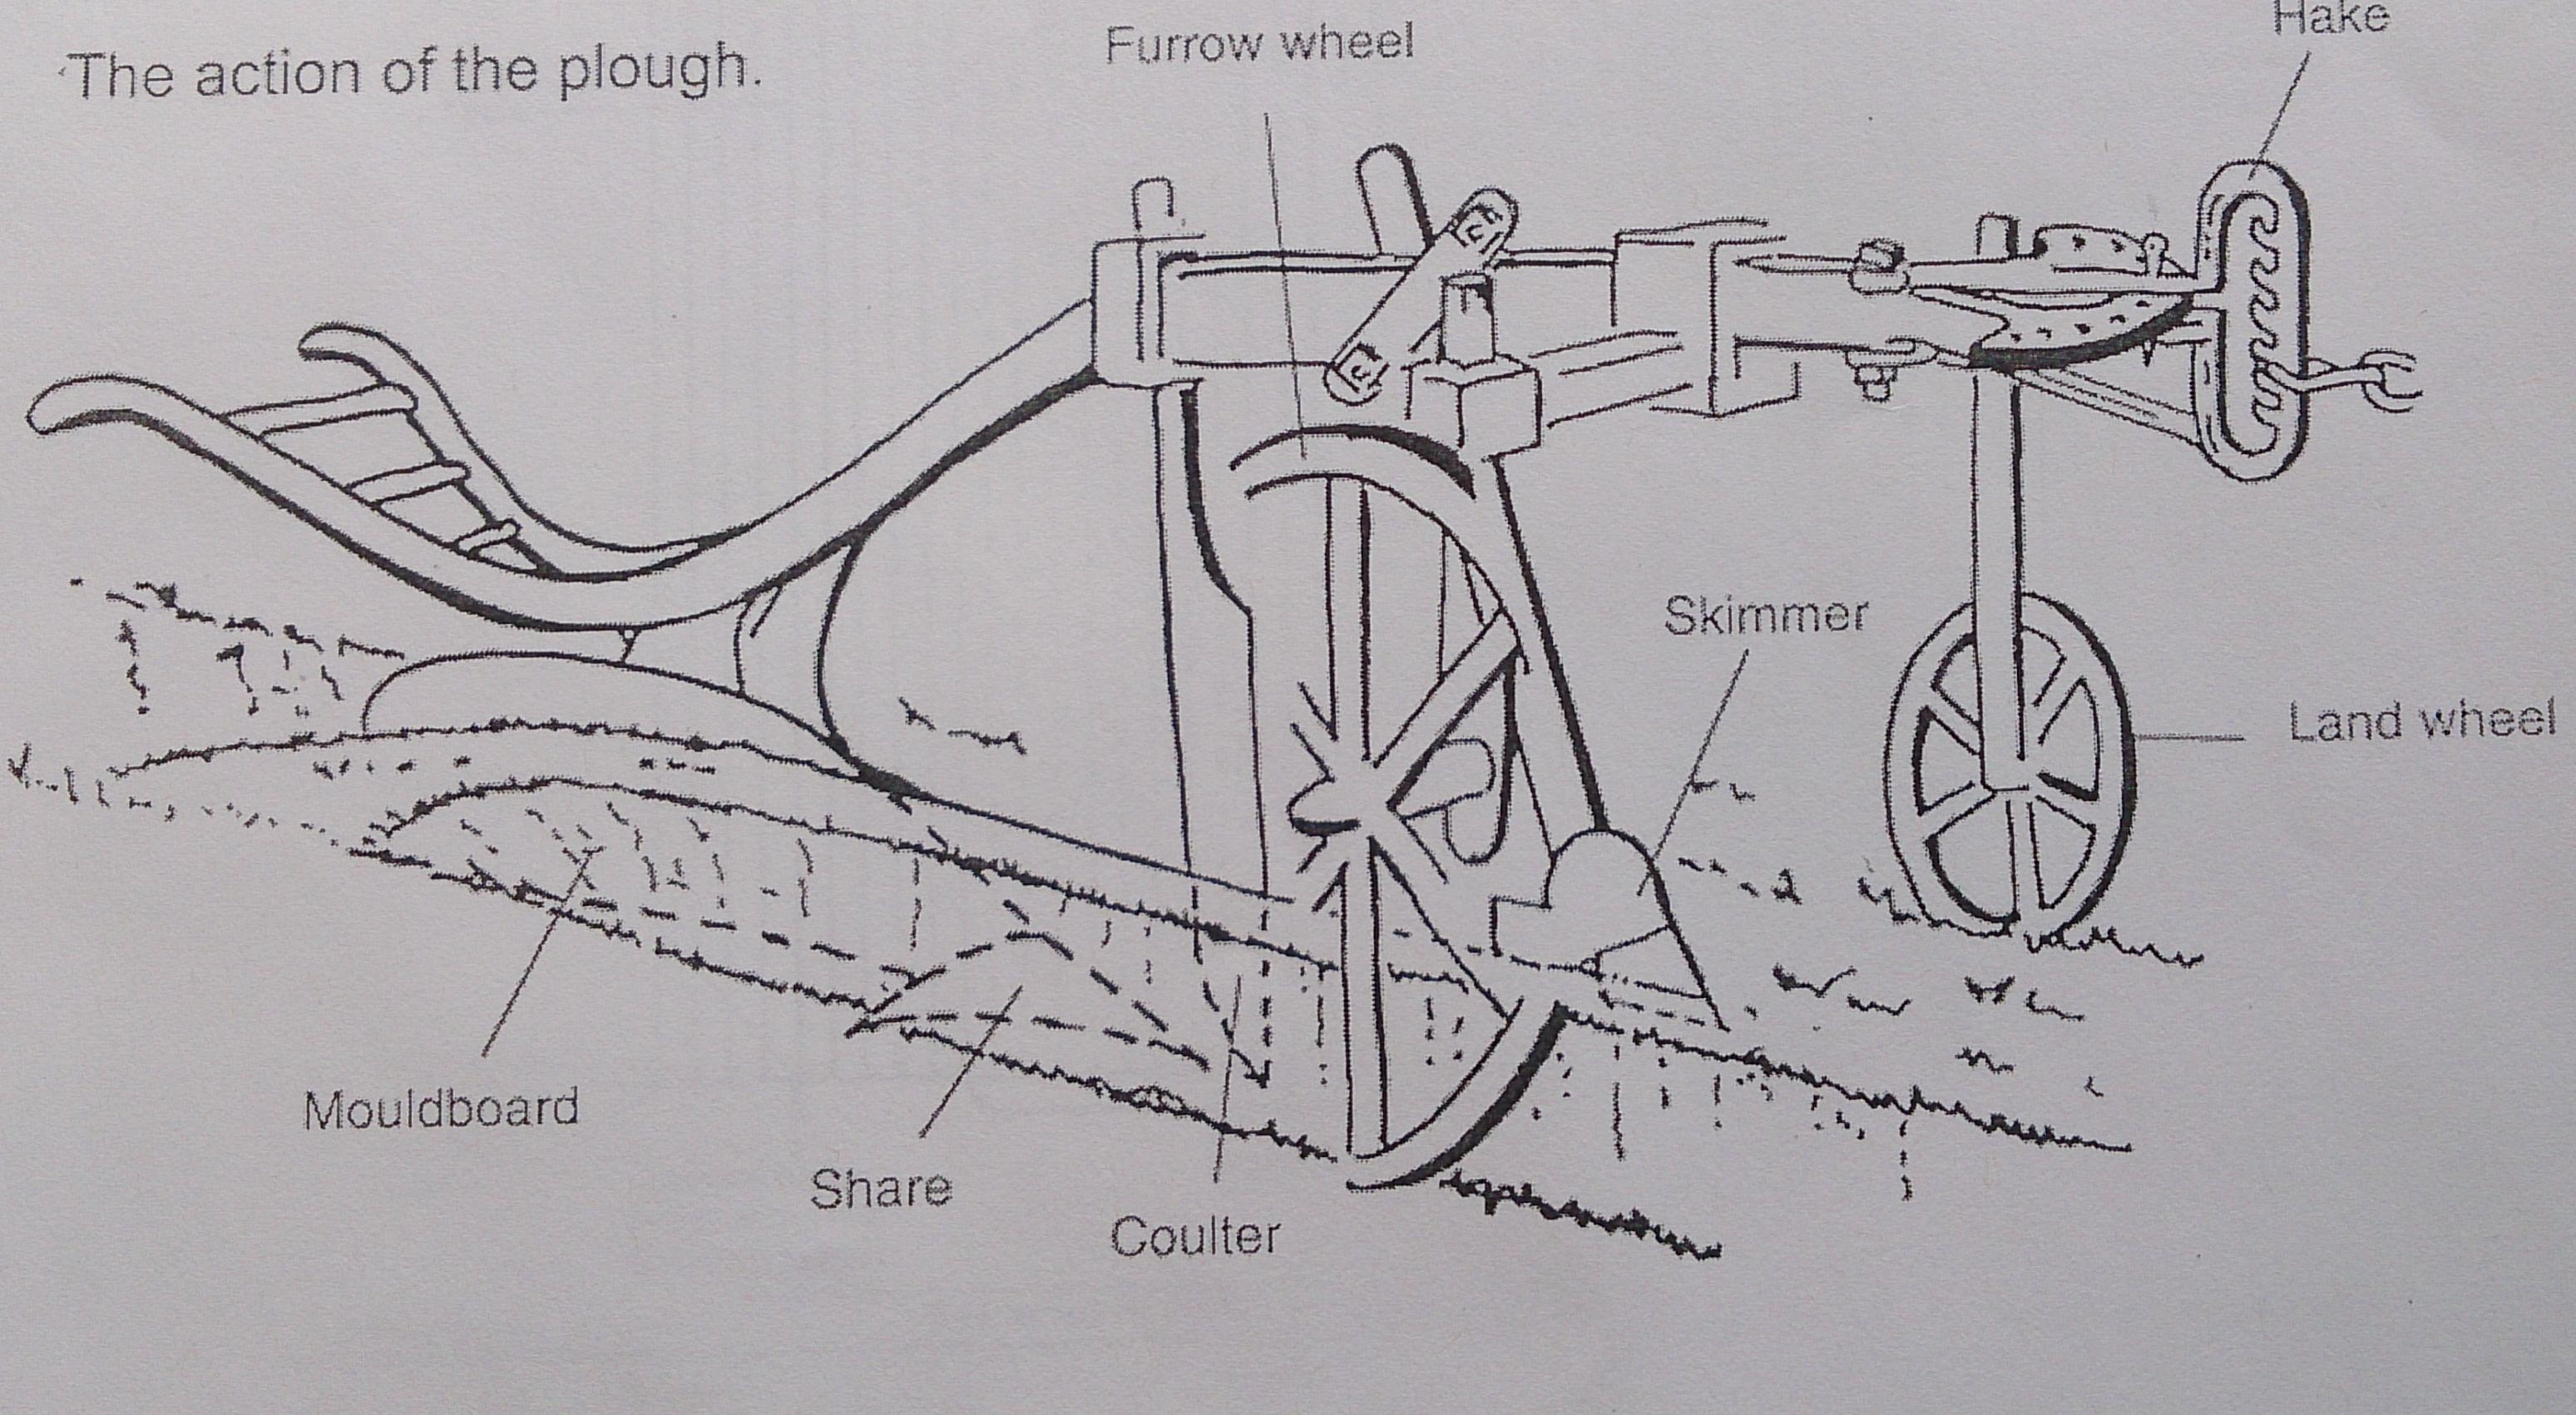 fisher snow plow diagram 2002 chevy cavalier wiring for stereo ploughing | gressenhall farm and workhouse